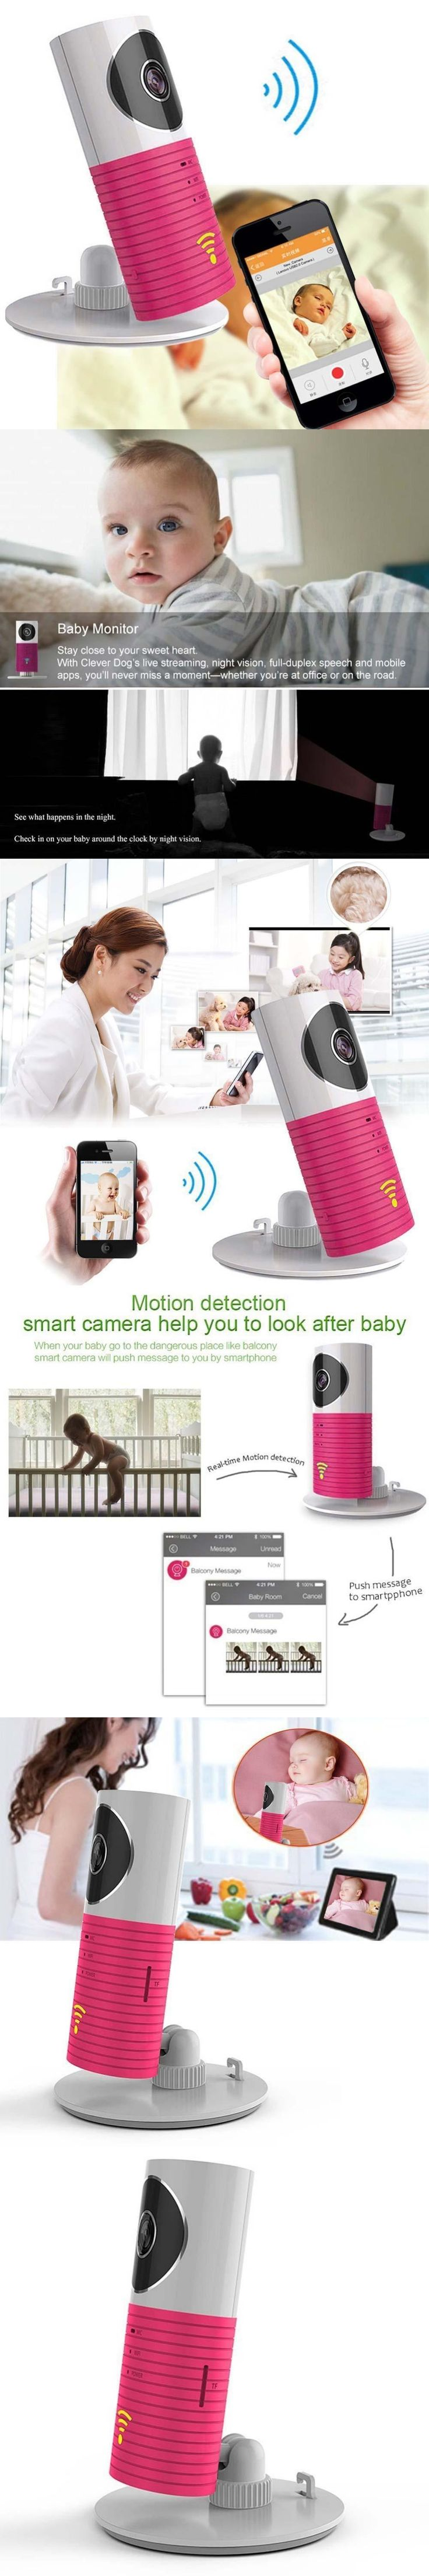 CCTV Wireless Security Camera Baby Monitor IP Smartphone Video Night Vision 2 Way Talkback With Motion activated Cell Alert